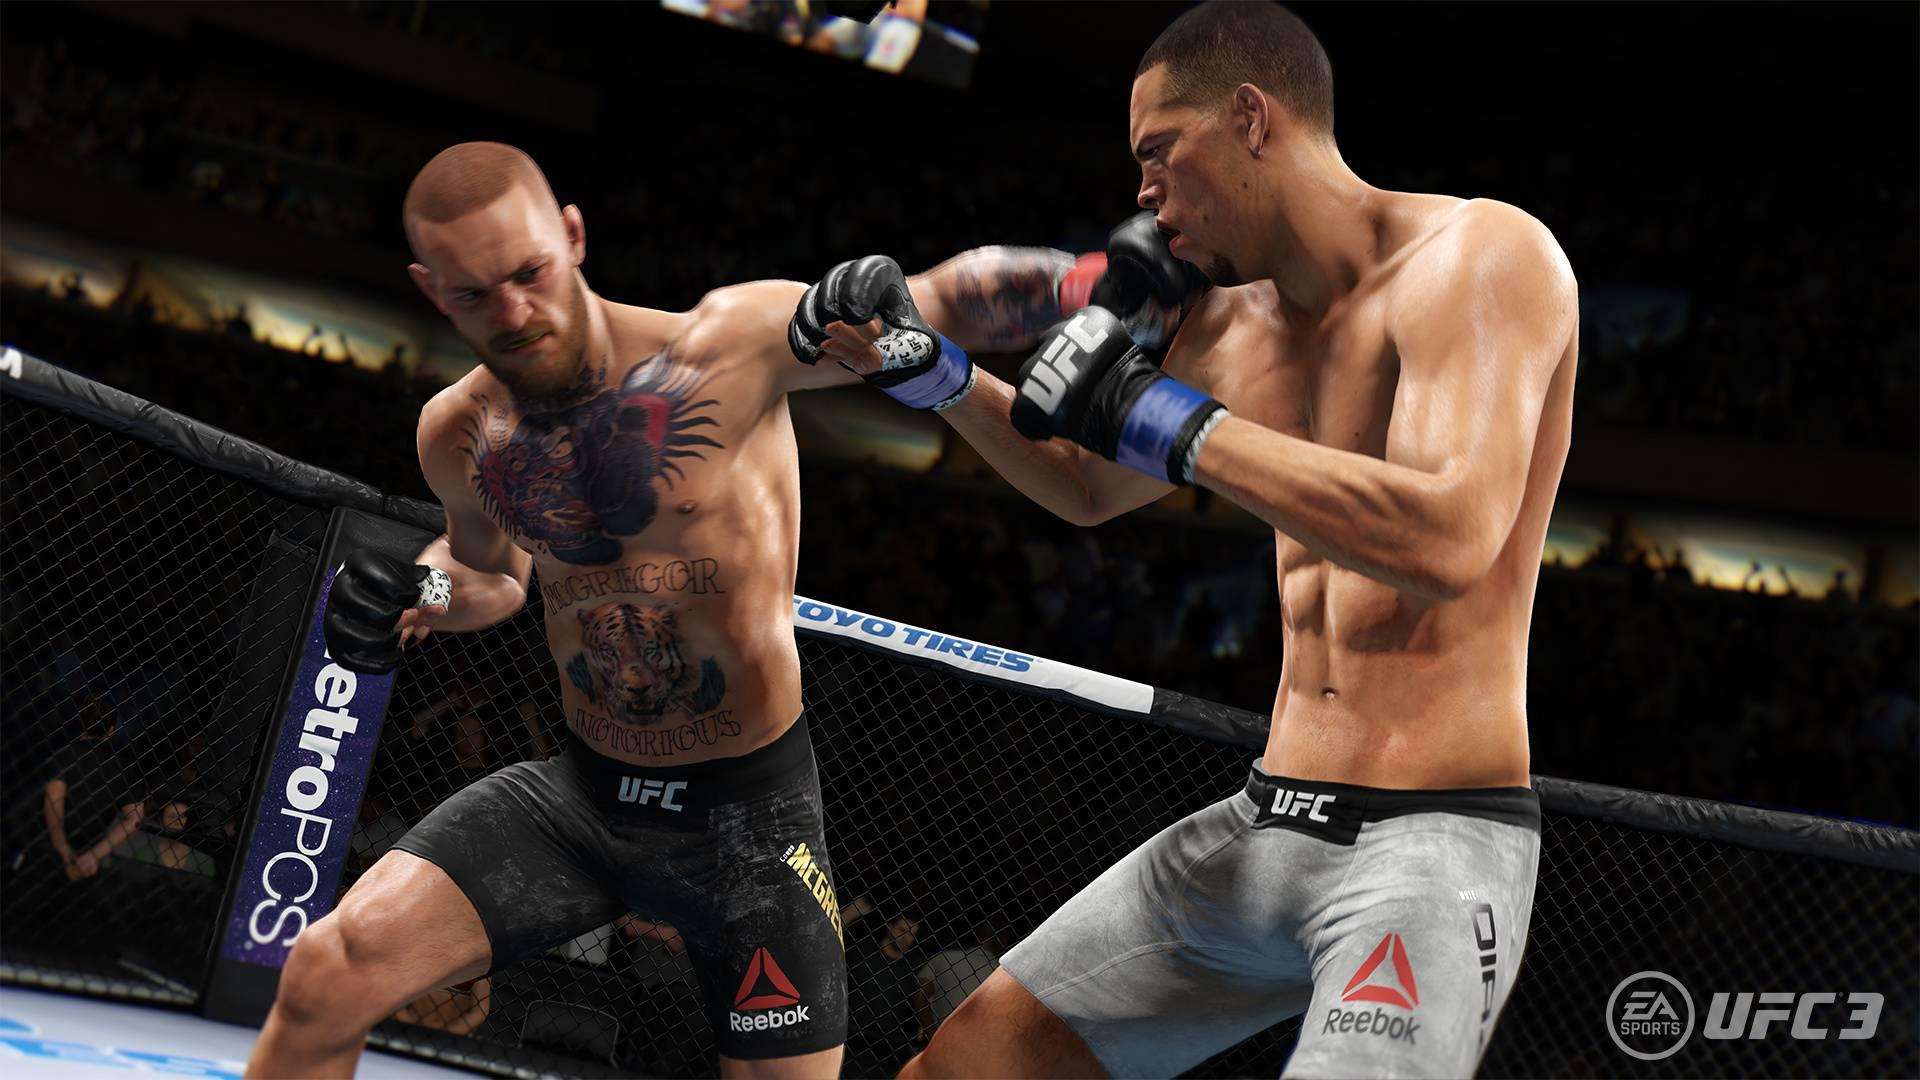 McGregor is super quick one the game – and deals massive damage if you don't keep your guard up